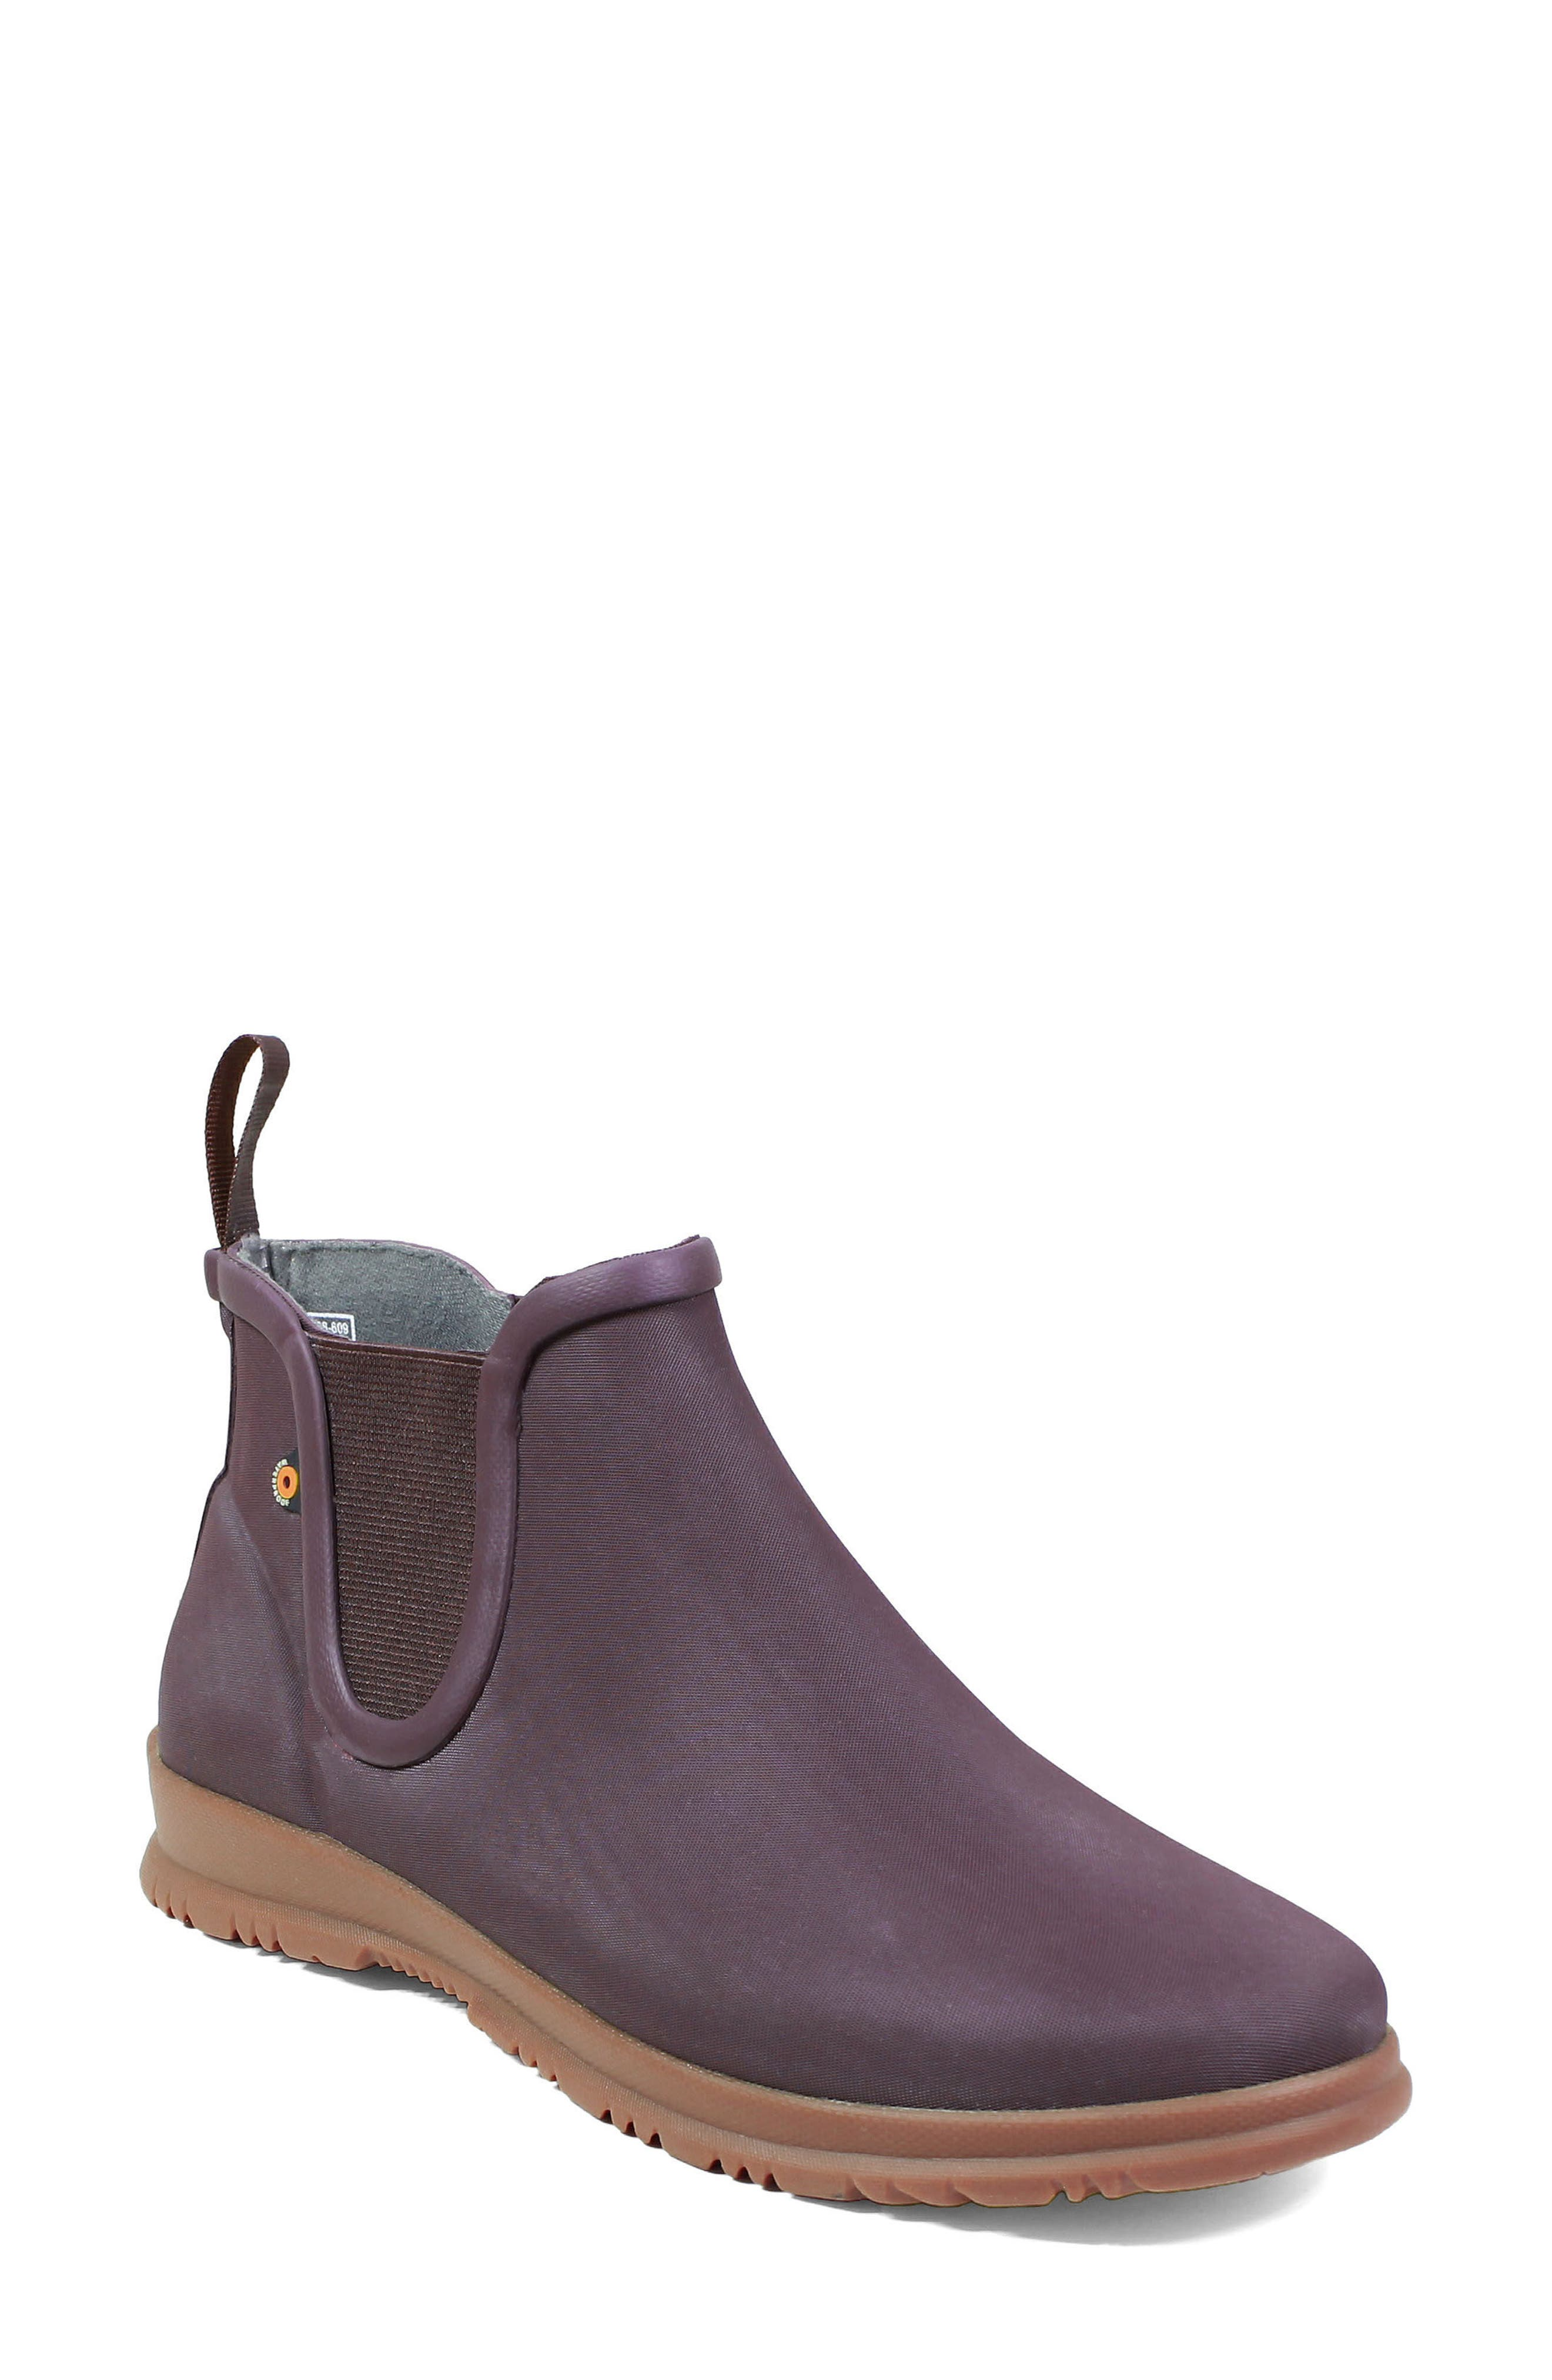 Bogs Sweetpea Rain Boot (Women)